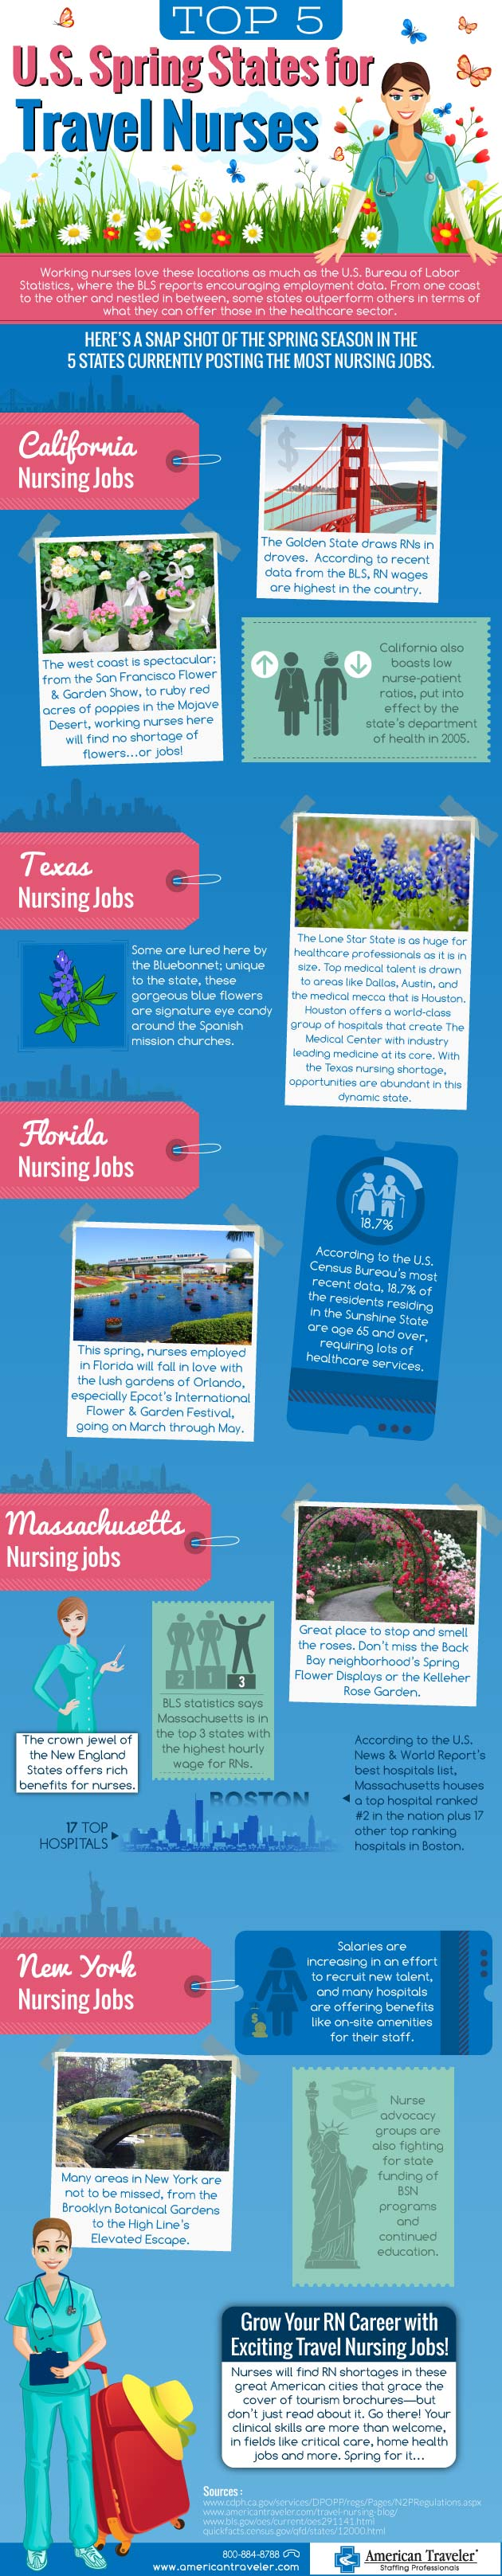 infographic top 5 states for spring travel american traveler top 5 spring states for travel nursing infographic